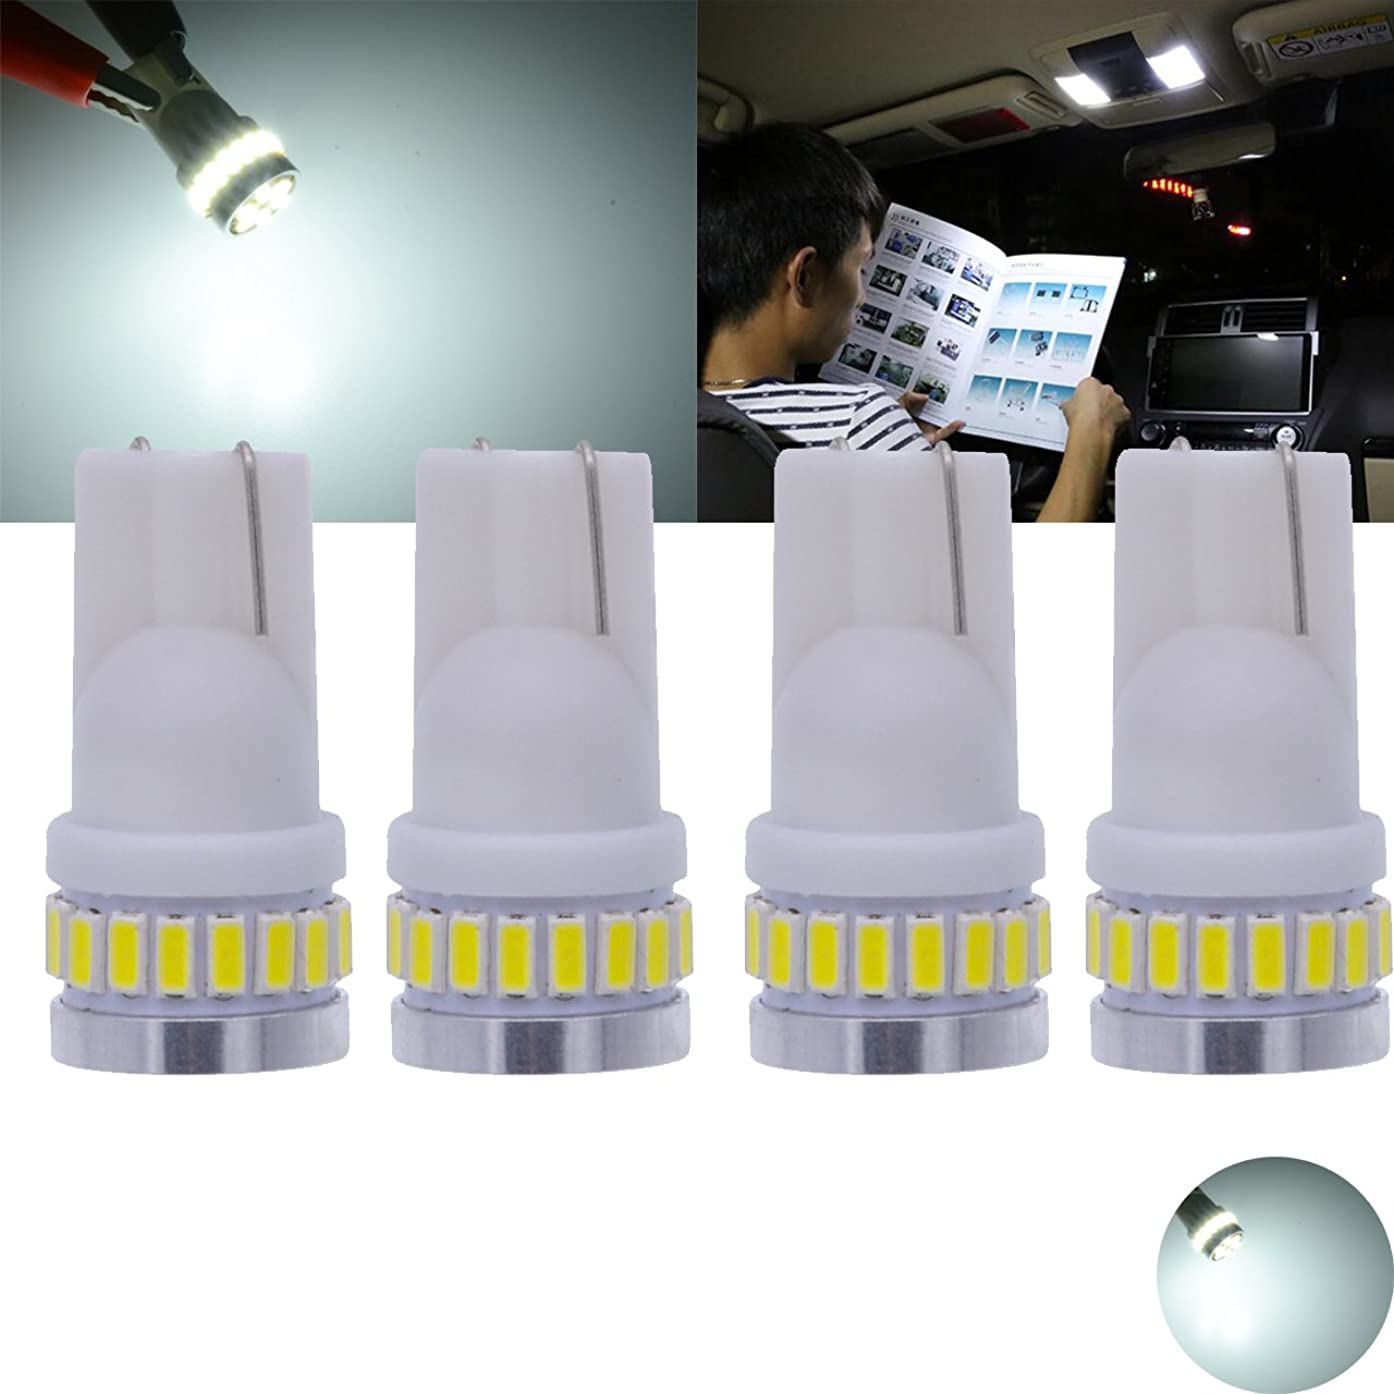 TUINCYN T10 194 LED Bulb White Super Bright 6000K 24SMD 3014 Chipsets 168 175 921 912 2825 W5W 175 158 Car Interior Light Dome Map Lamp License Plate Light Side Markers Light Bulb, 12V(4pcs)